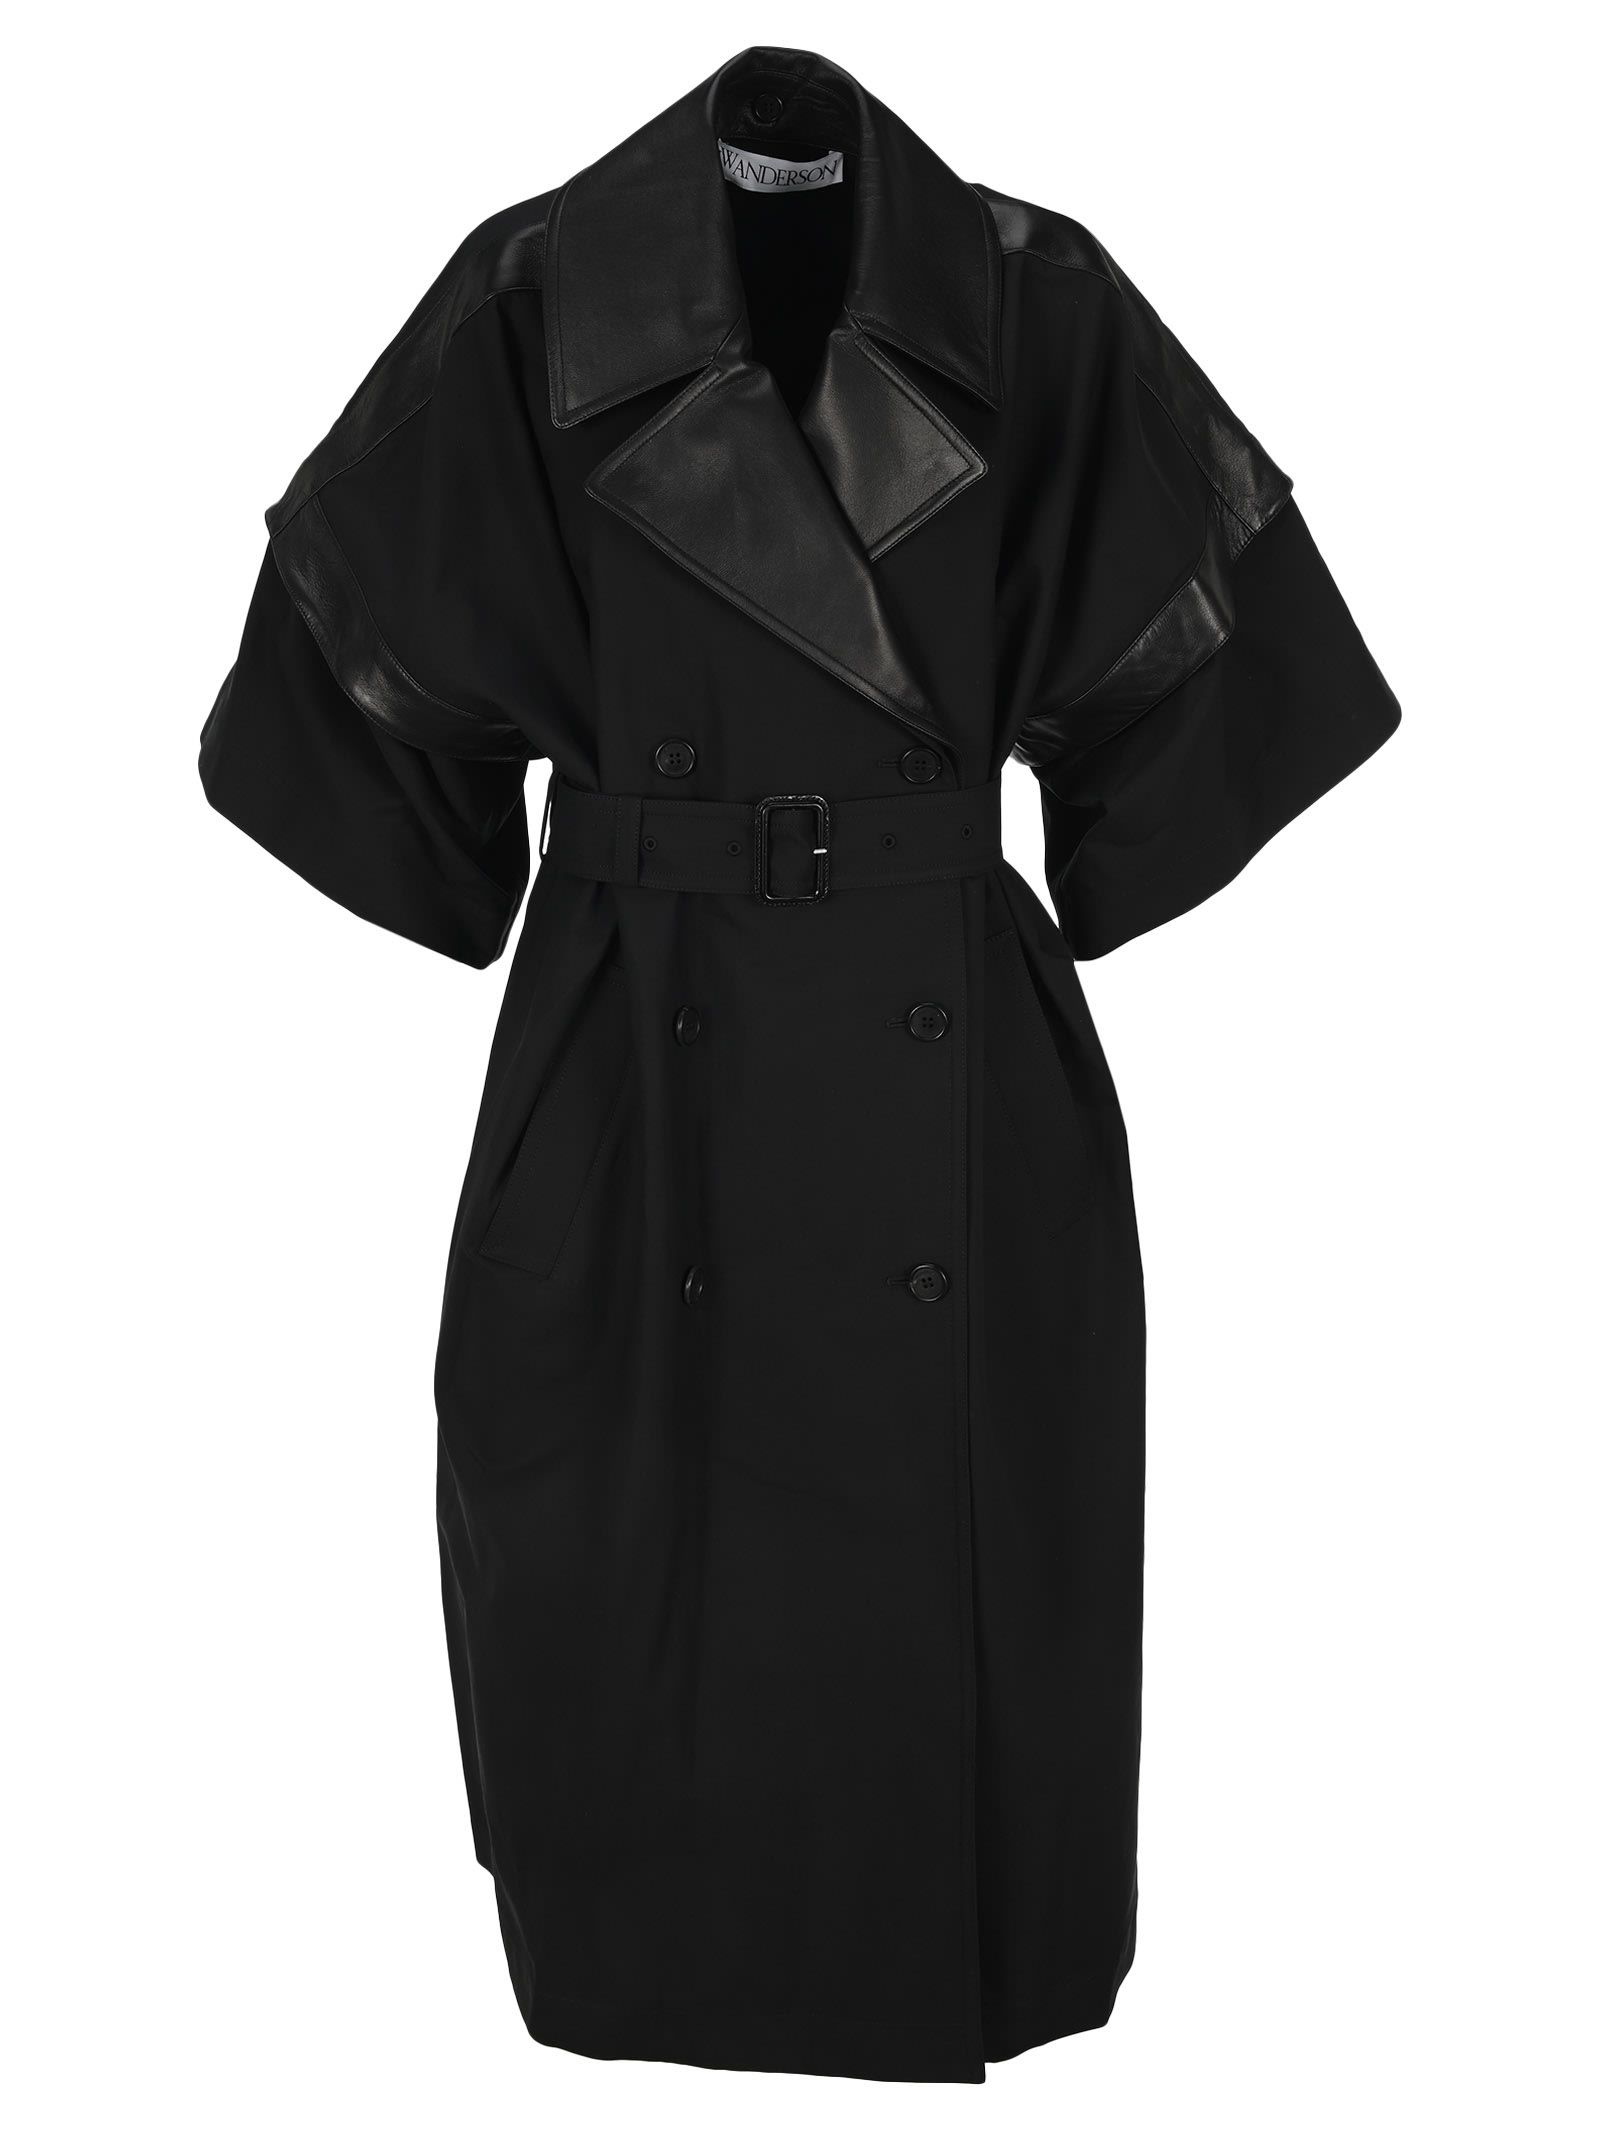 J.W.Anderson Jw Anderson Double Breasted Trench Coat